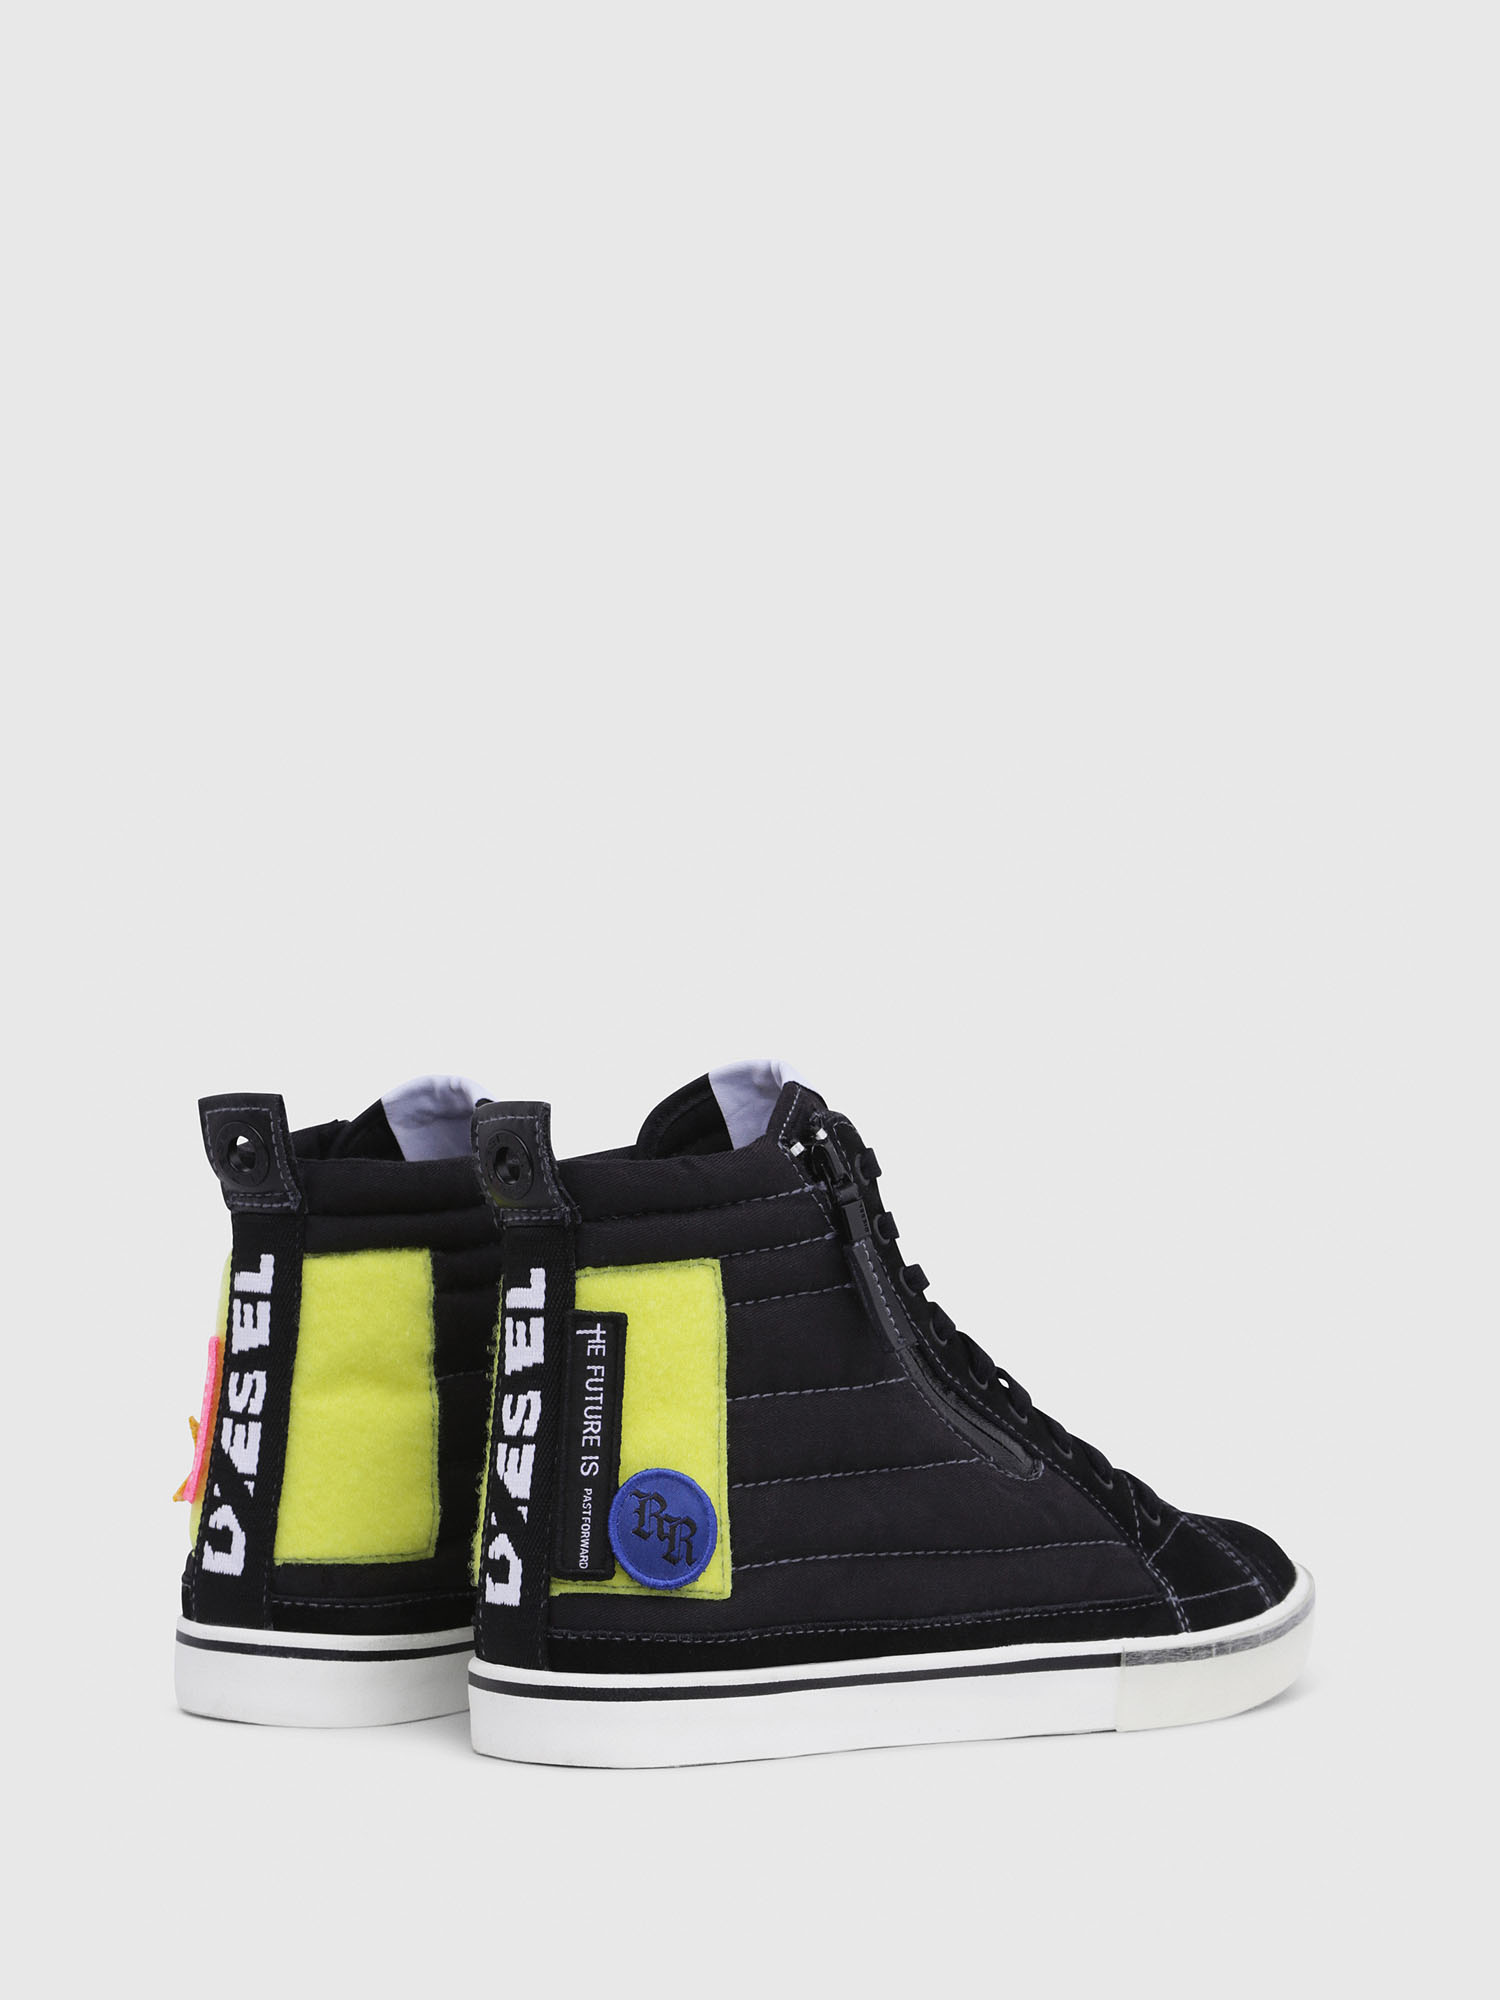 Diesel - D-VELOWS MID PATCH,  - Sneakers - Image 3